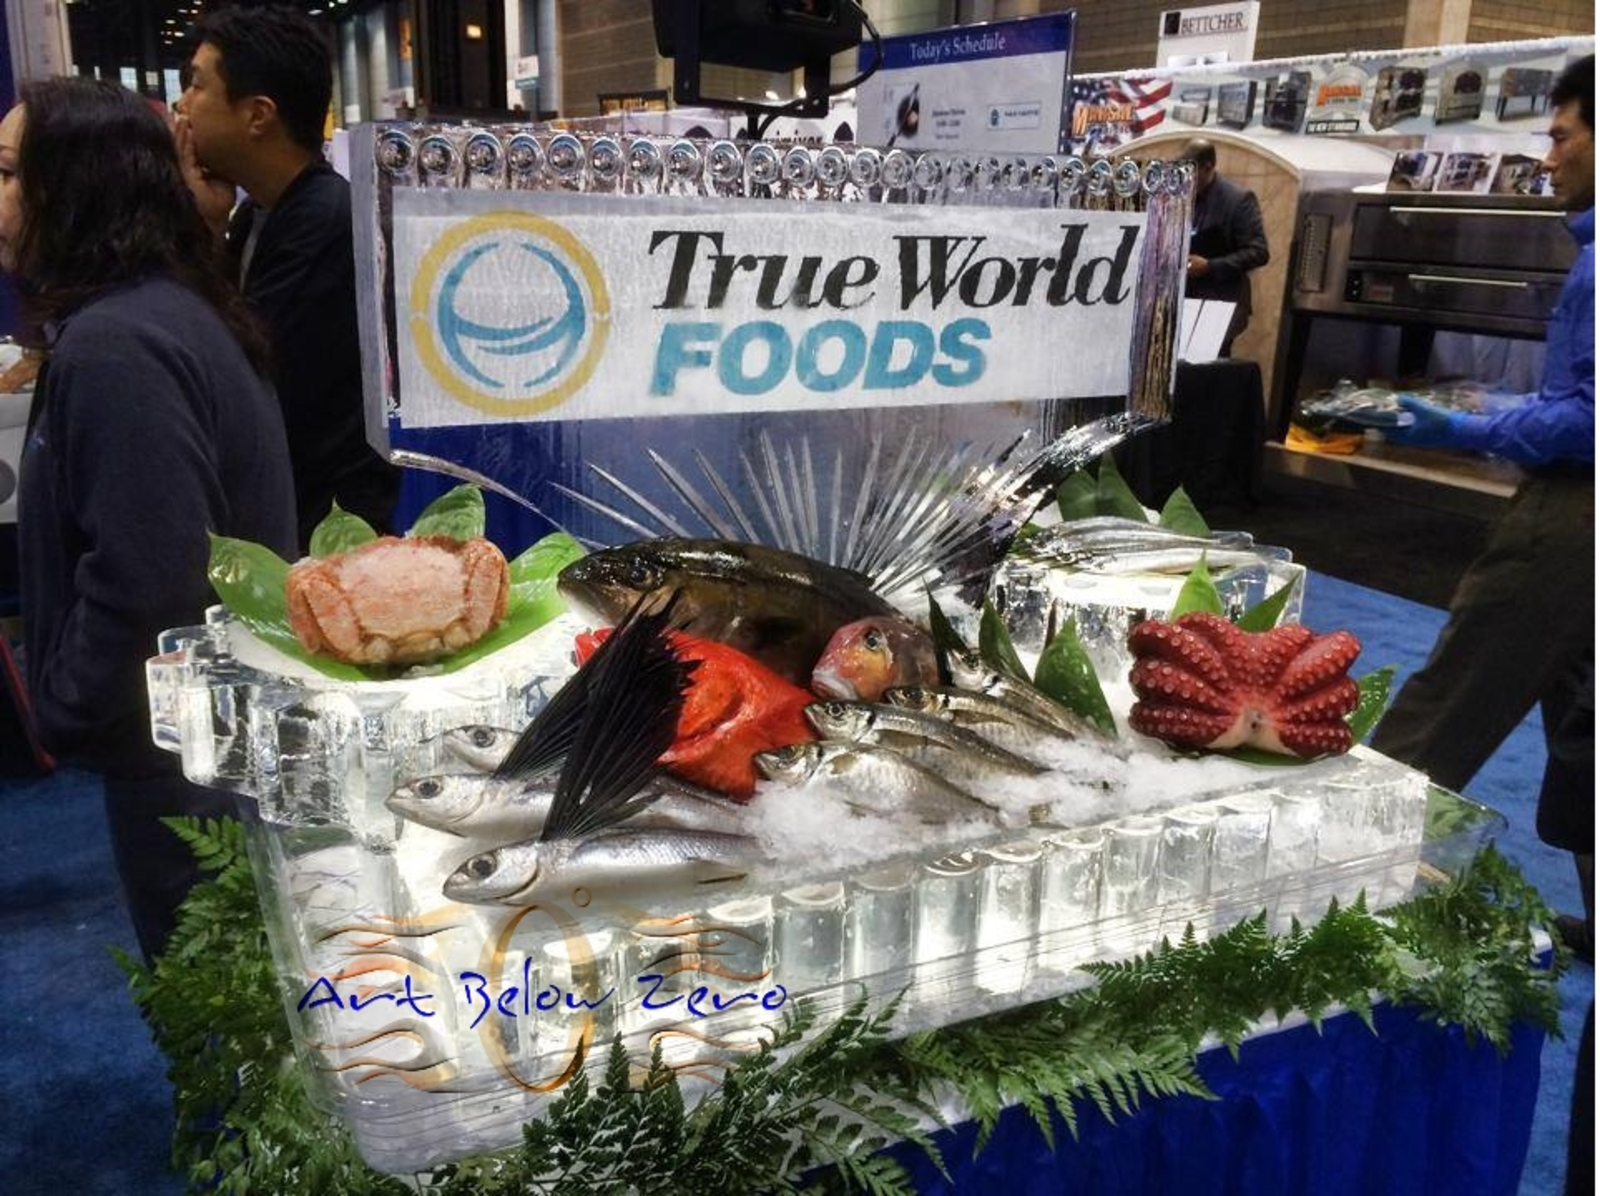 True_world_foods_seafood_display_at_the_nra_show_2014